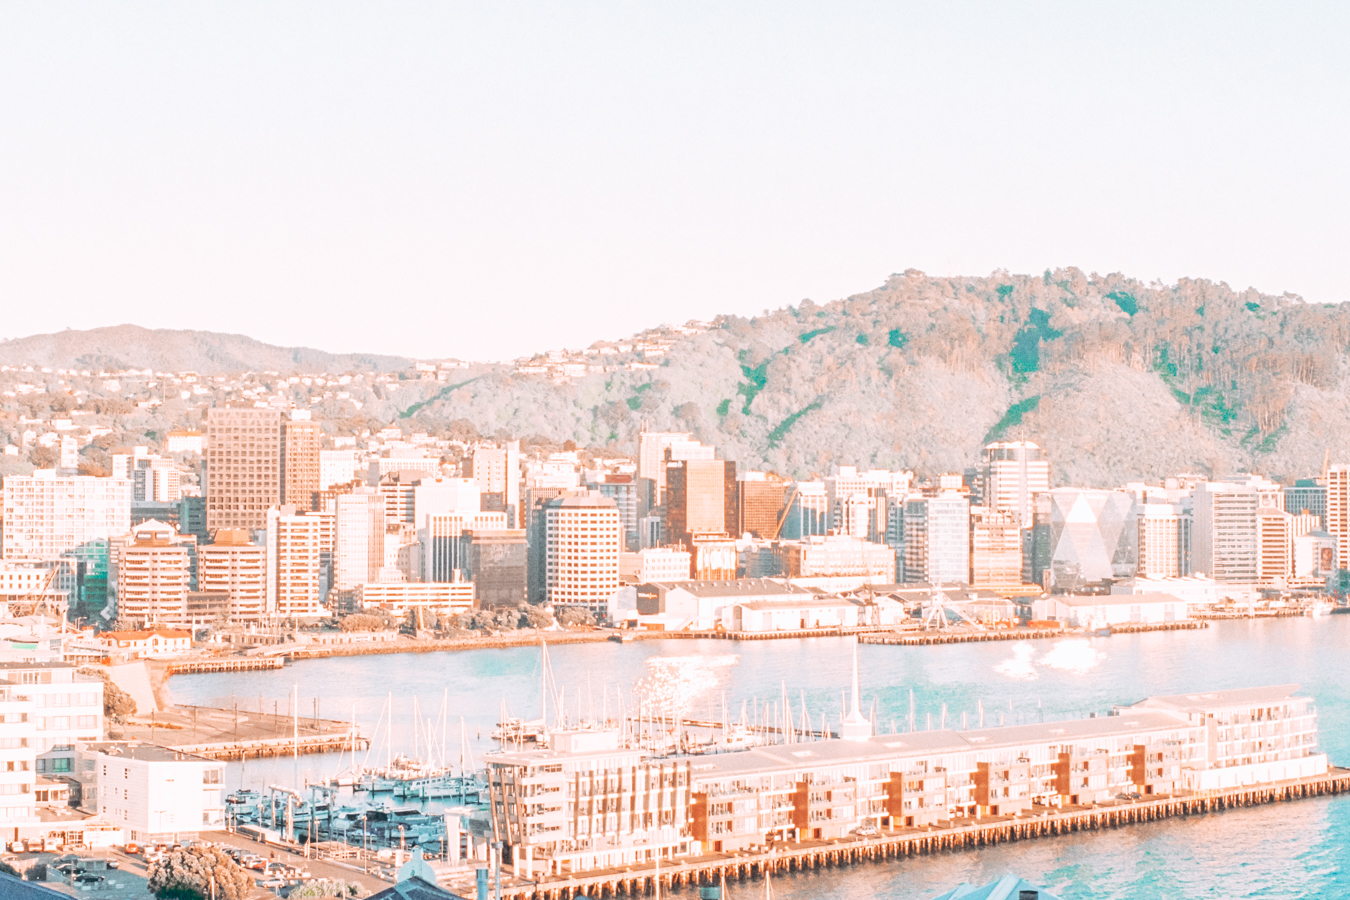 A view of buildings and water in Wellington